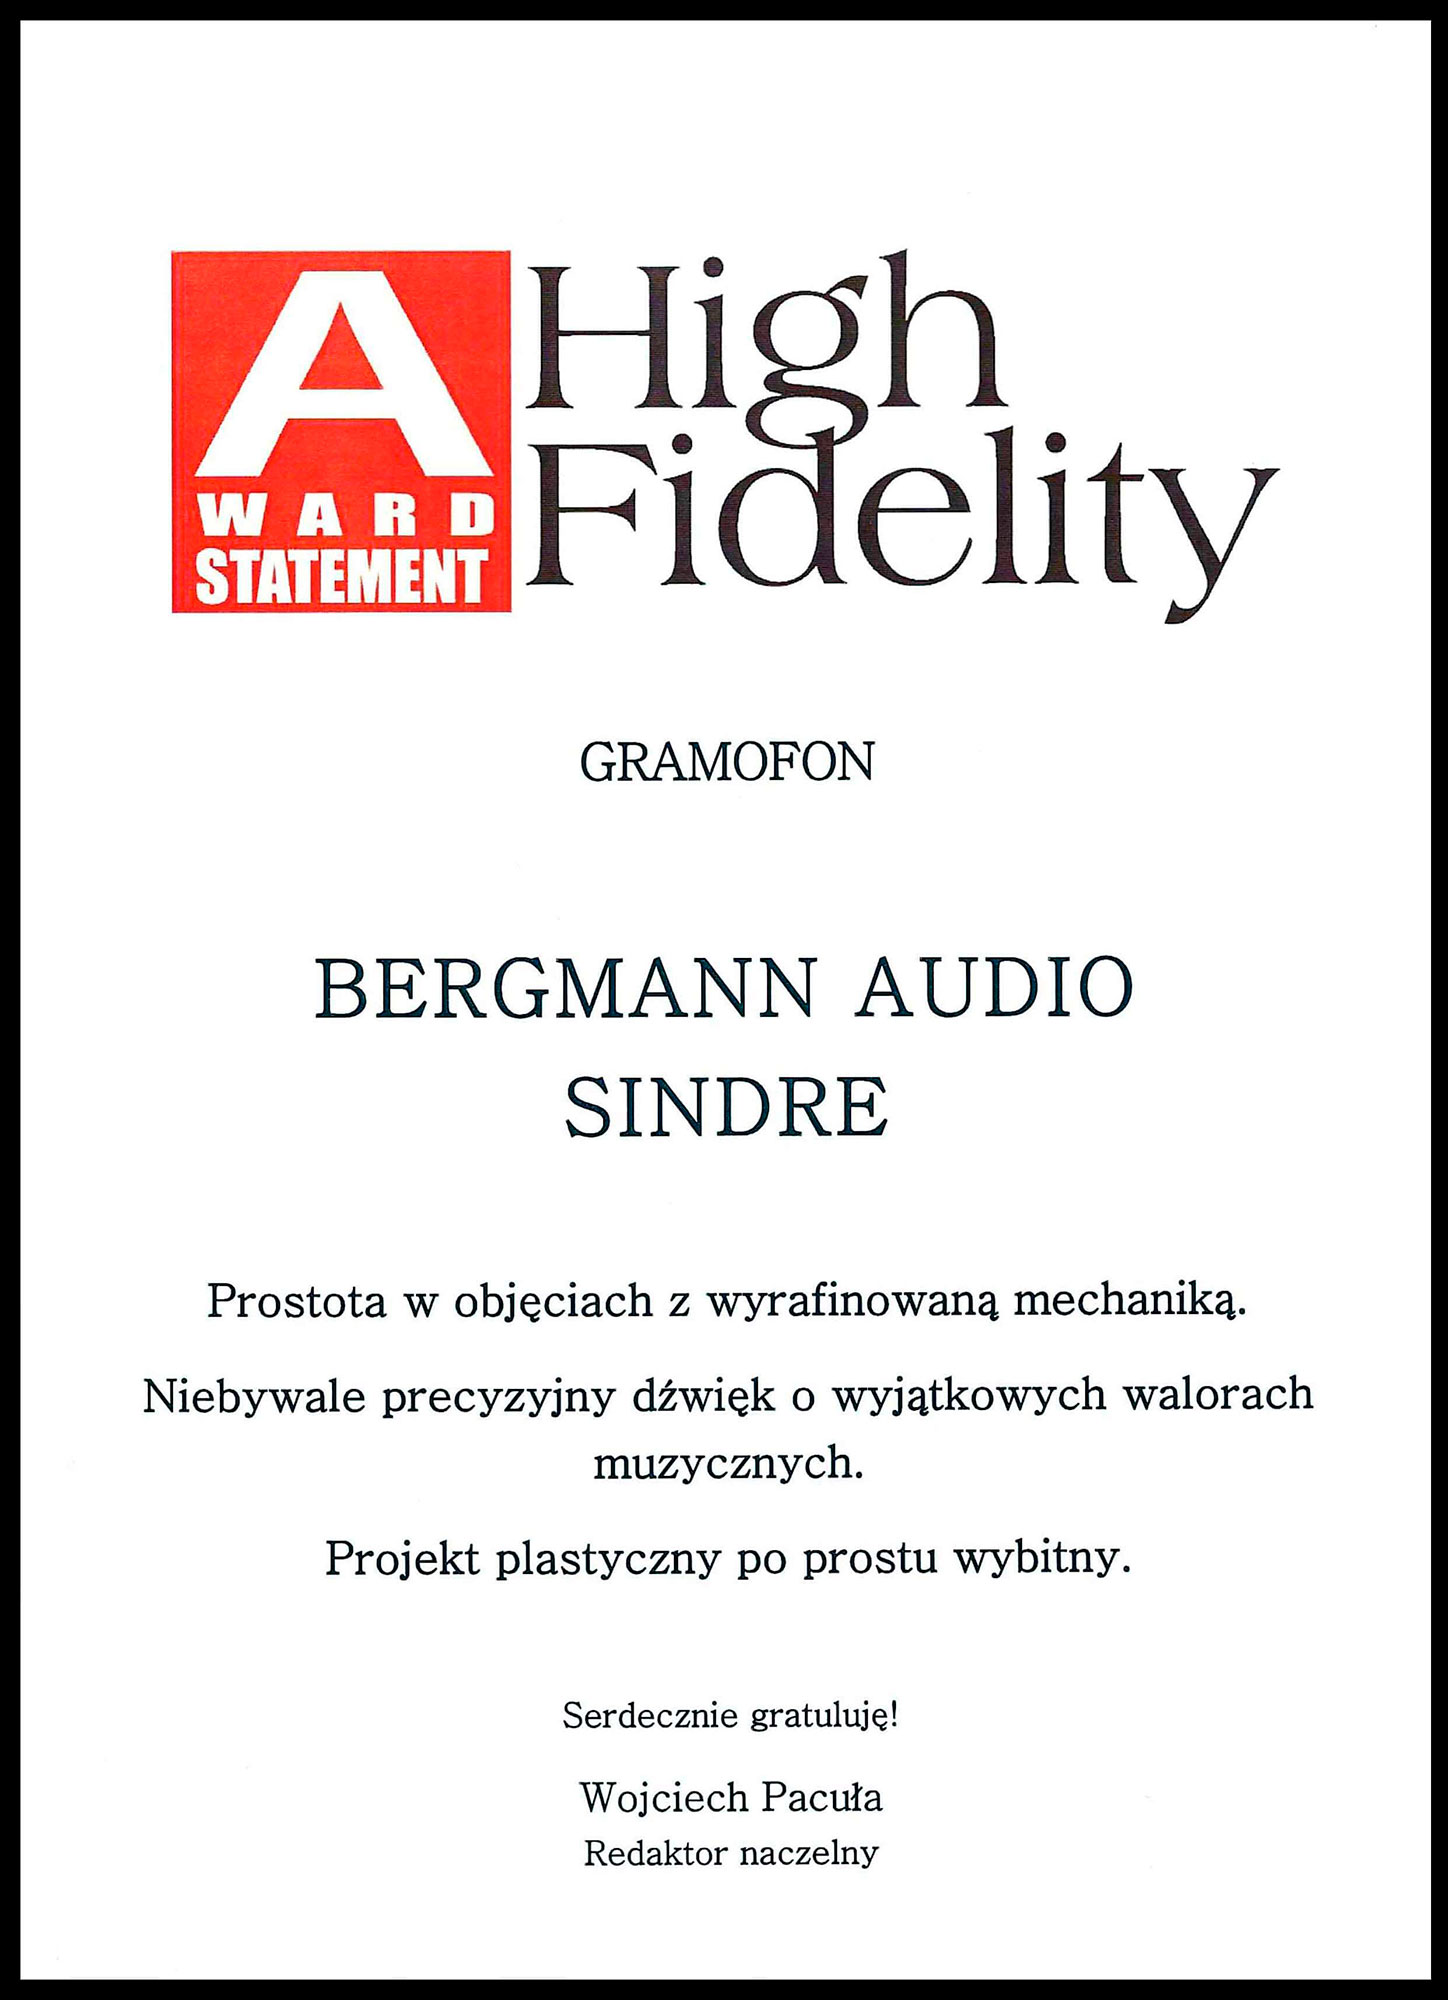 High Fidelity award from Polen, Sindre turntable